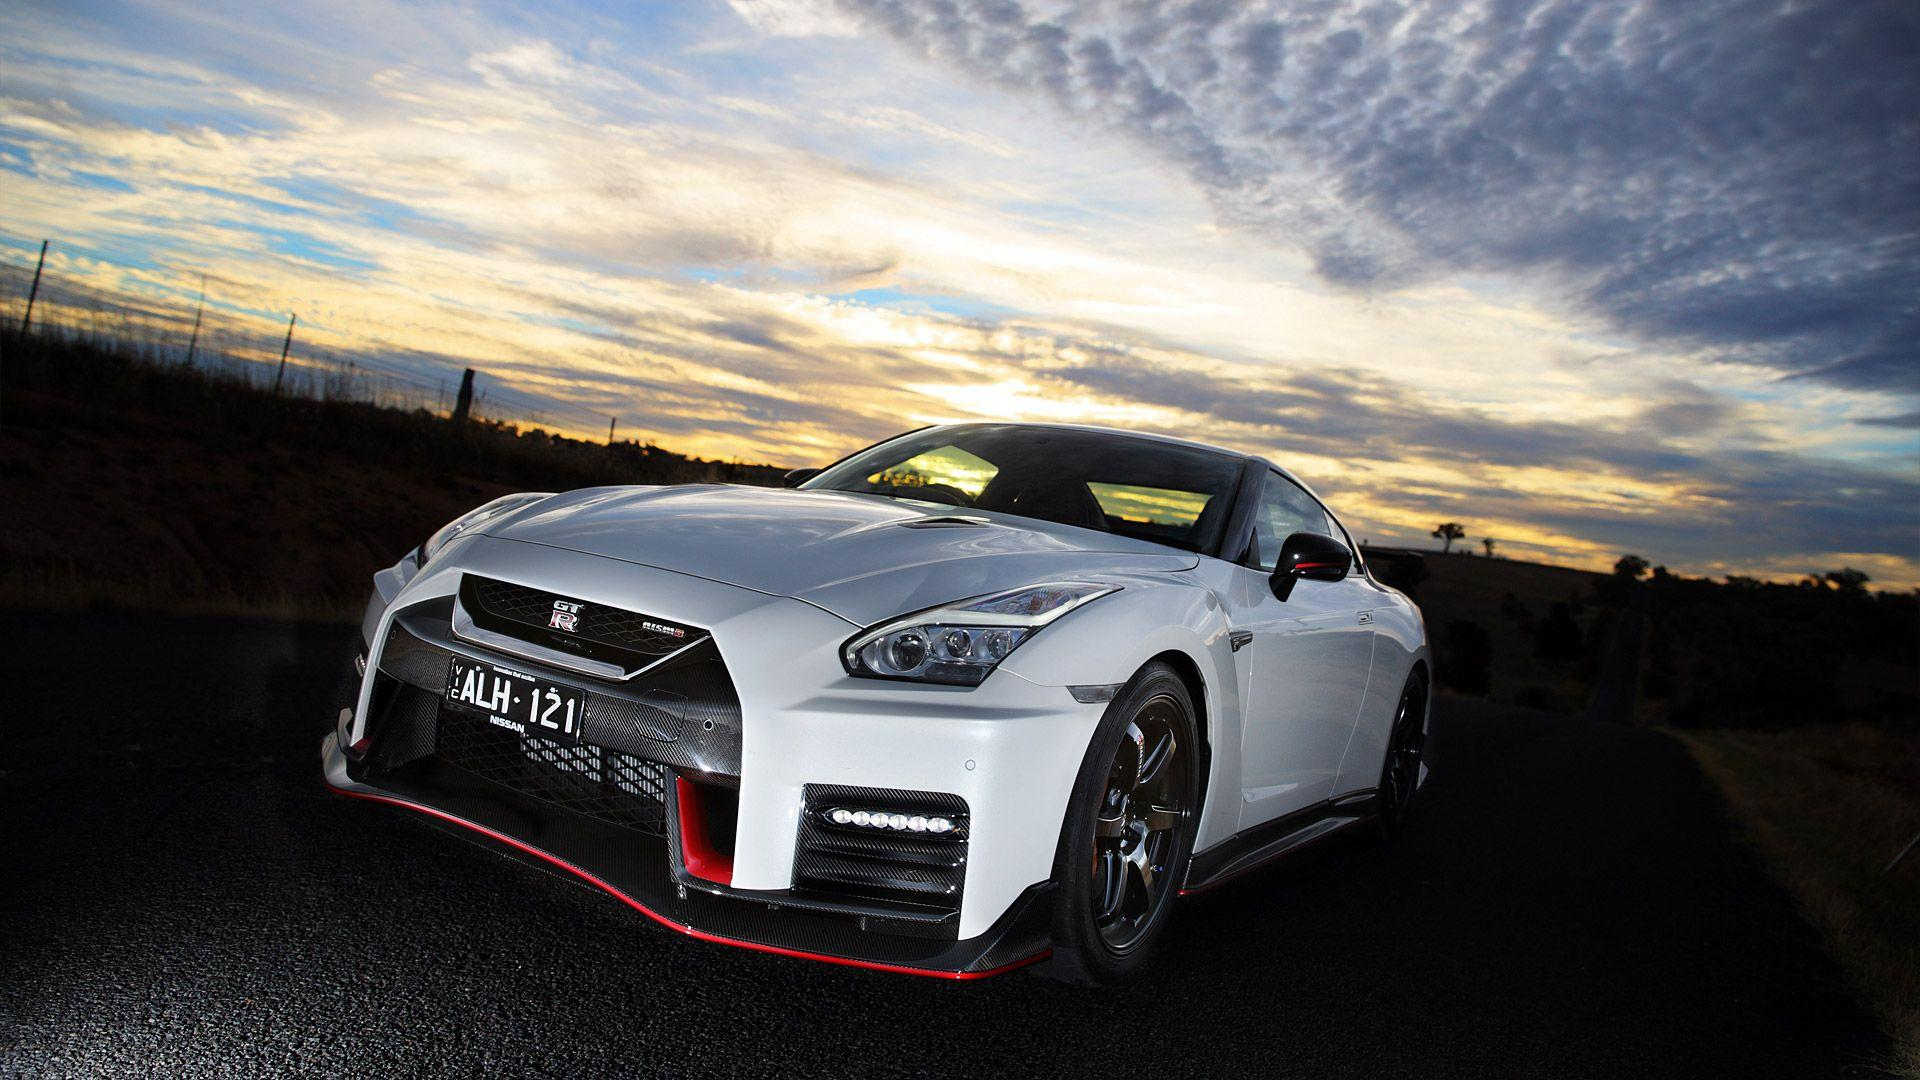 Nissan GT-R Nismo Wallpapers - Wallpaper Cave